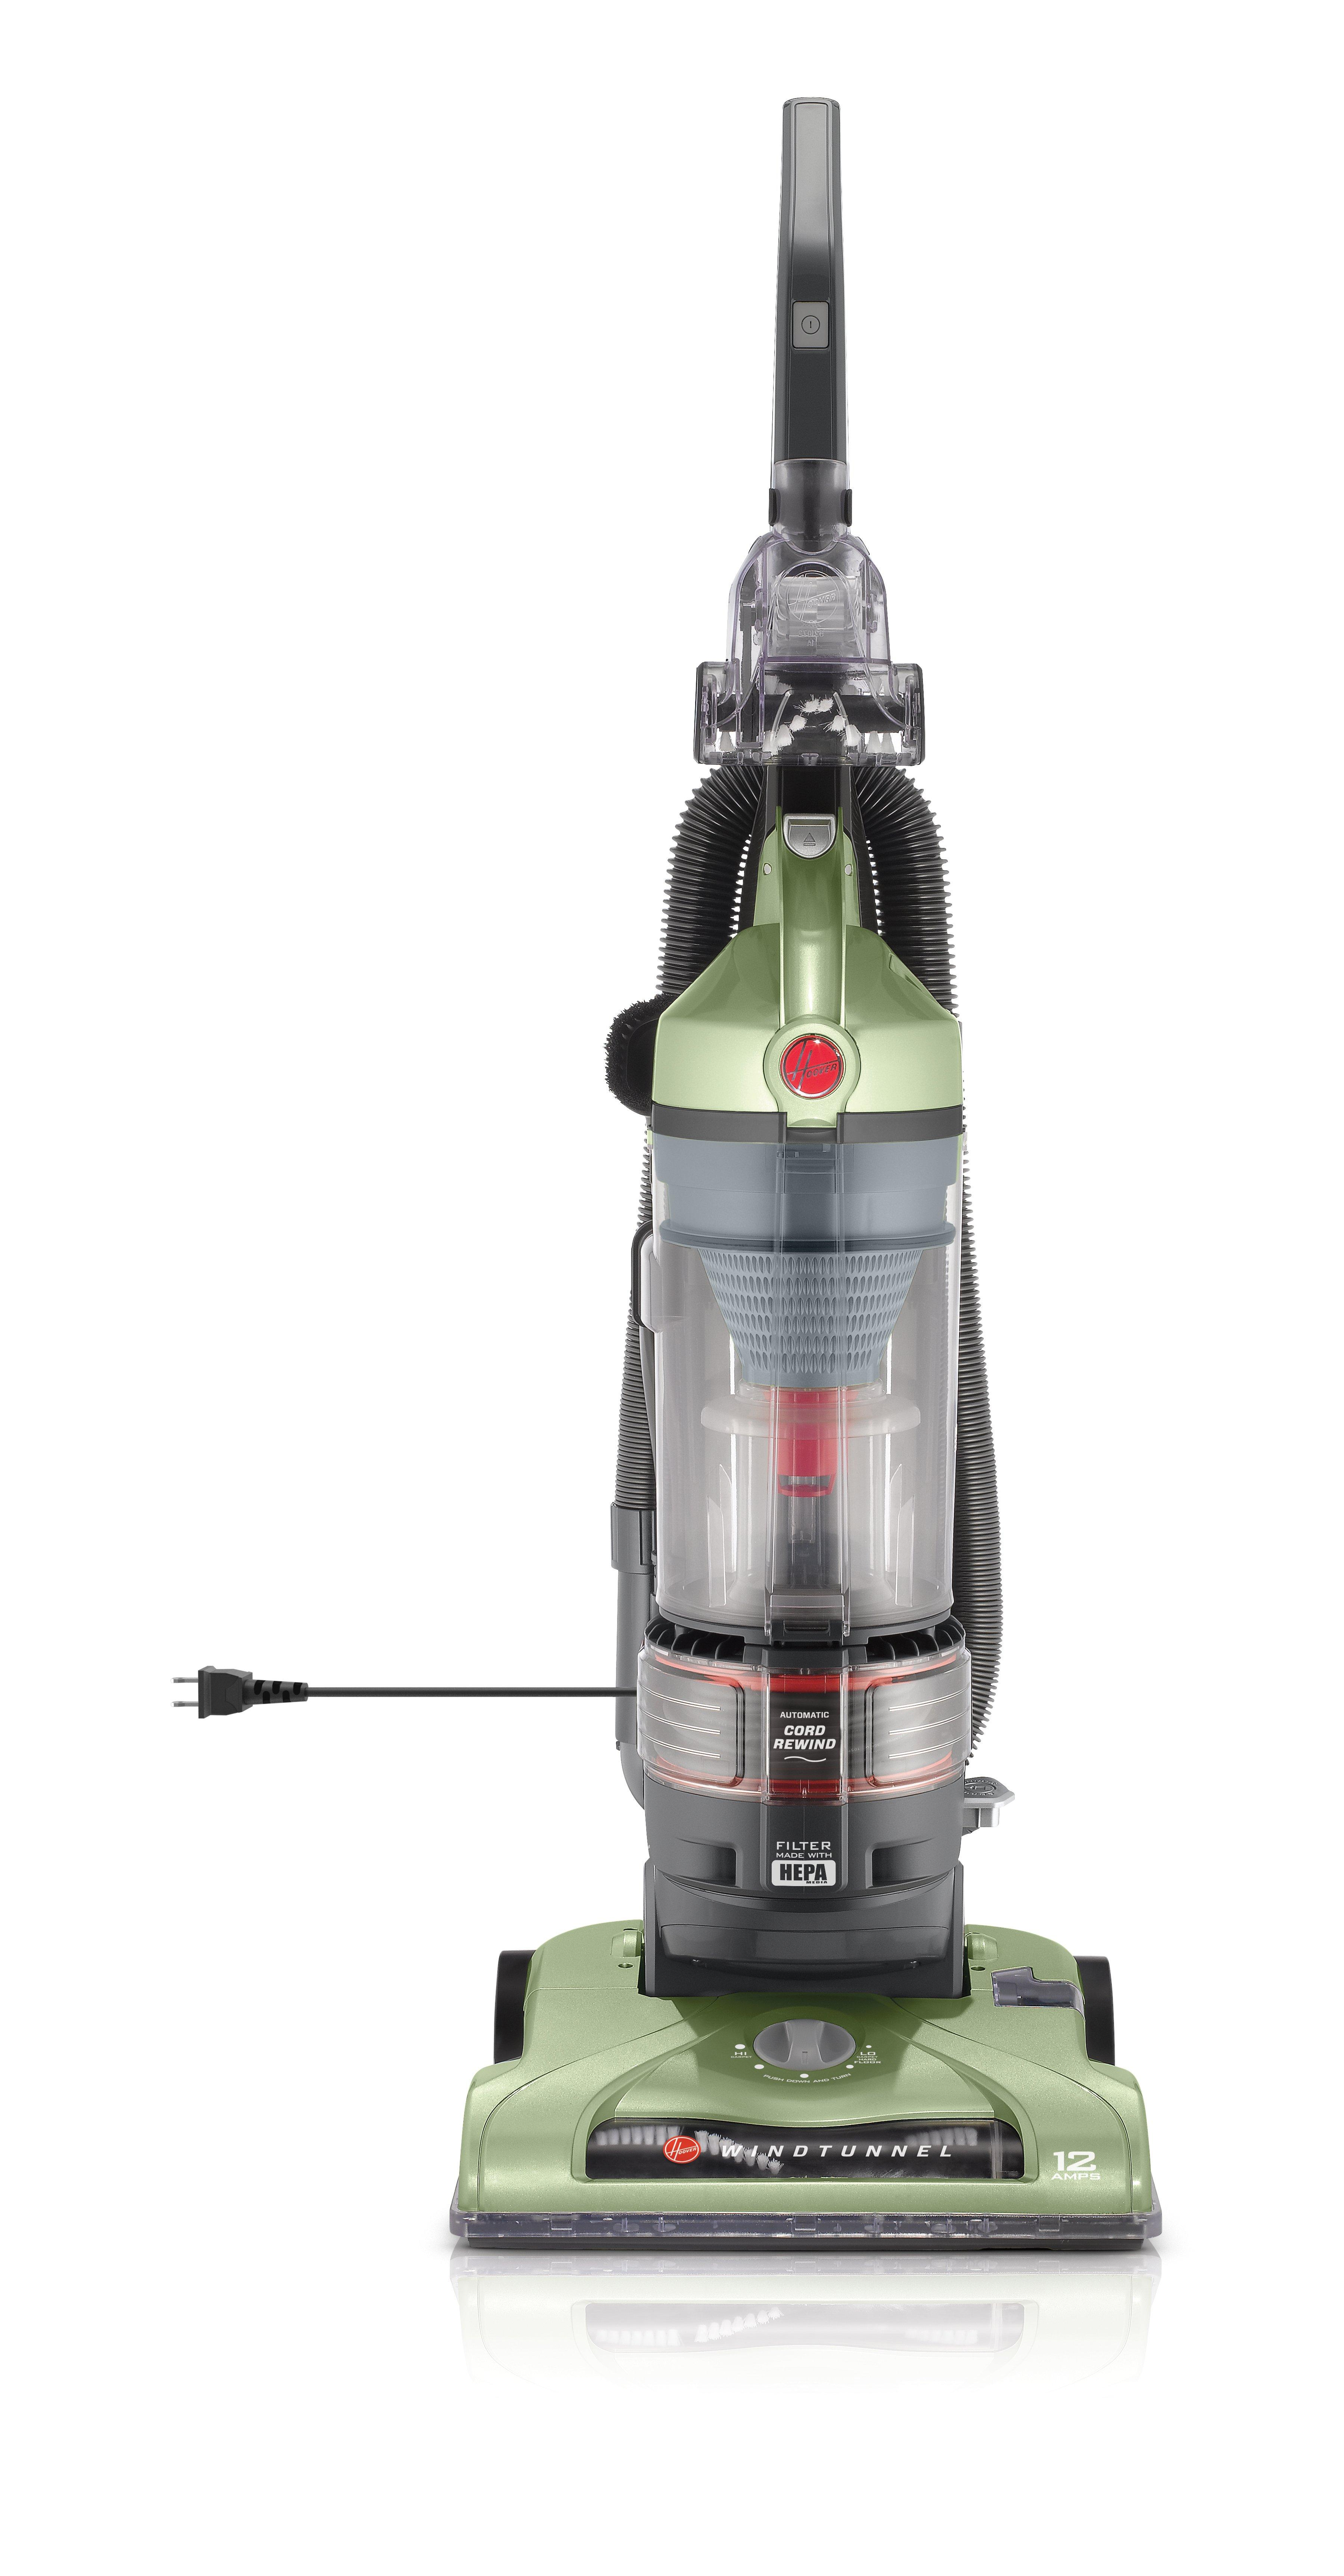 hoover windtunnel t series parts diagram electric ceiling light wiring rewind plus upright vacuum uh70120 shop accessories